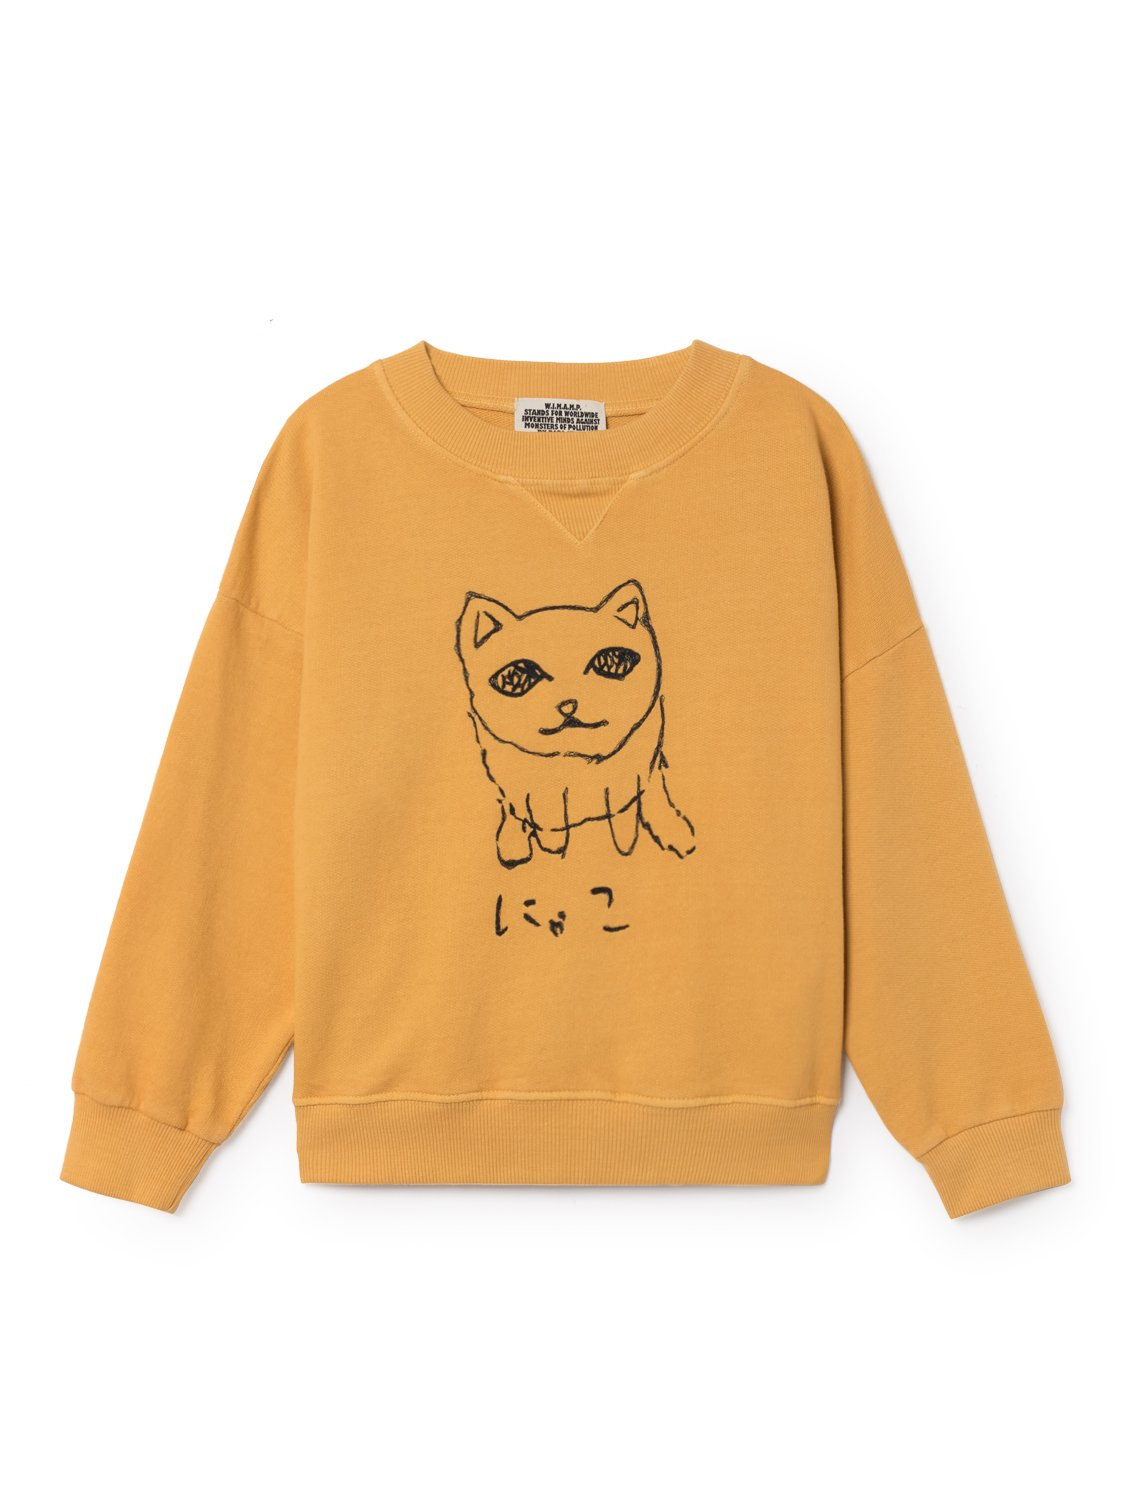 W.I.M.A.M.P. Yellow Sweatshirt